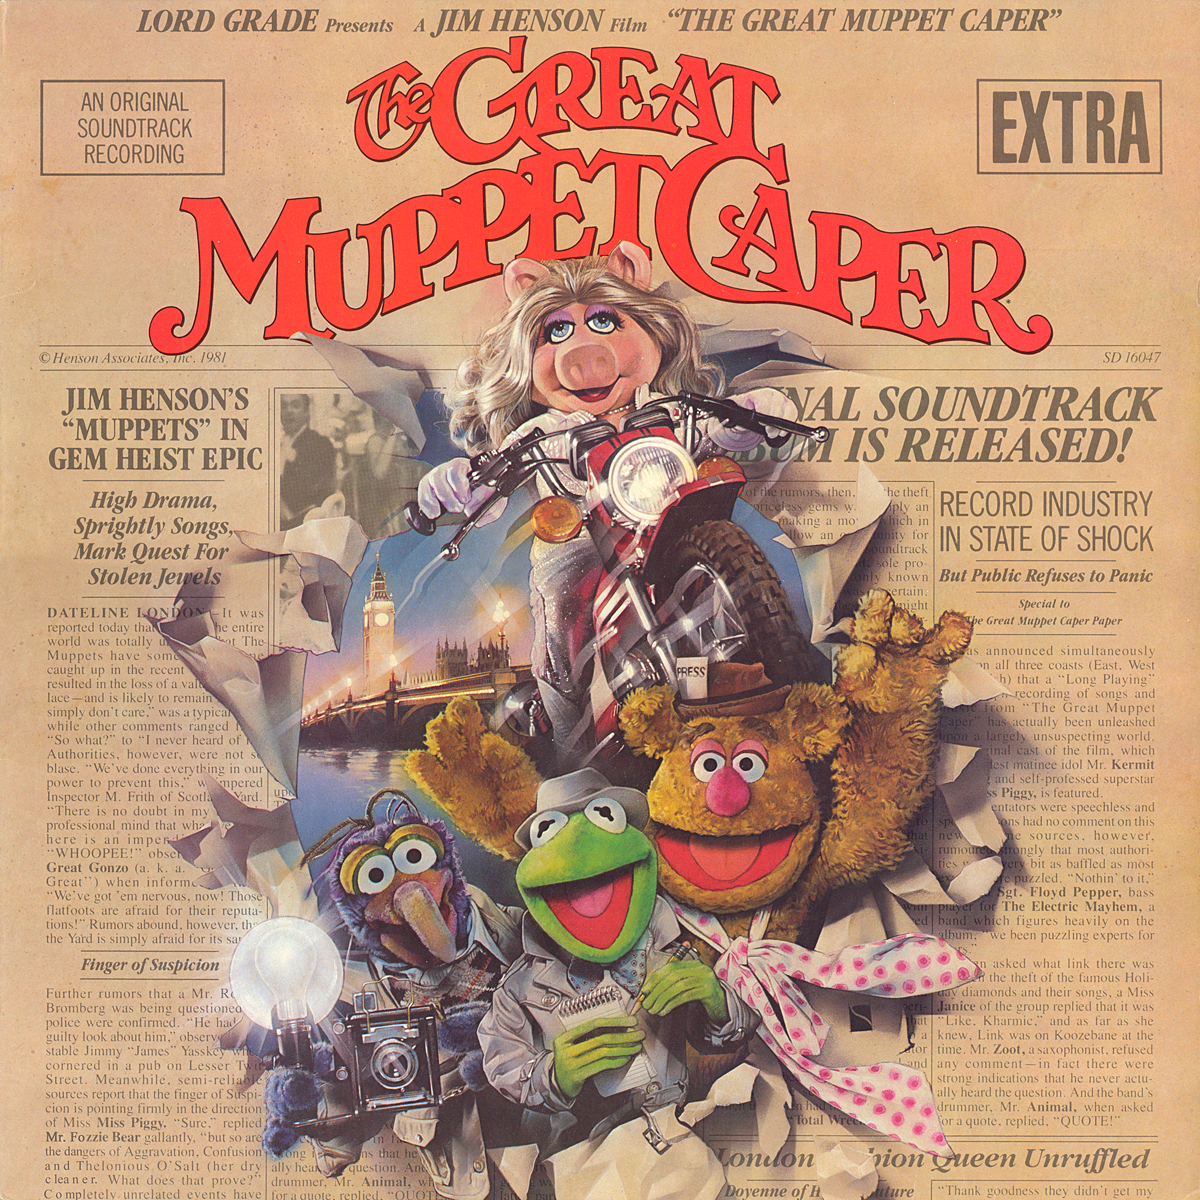 The Great Muppet Caper Vinyl The Muppets The Great Muppet